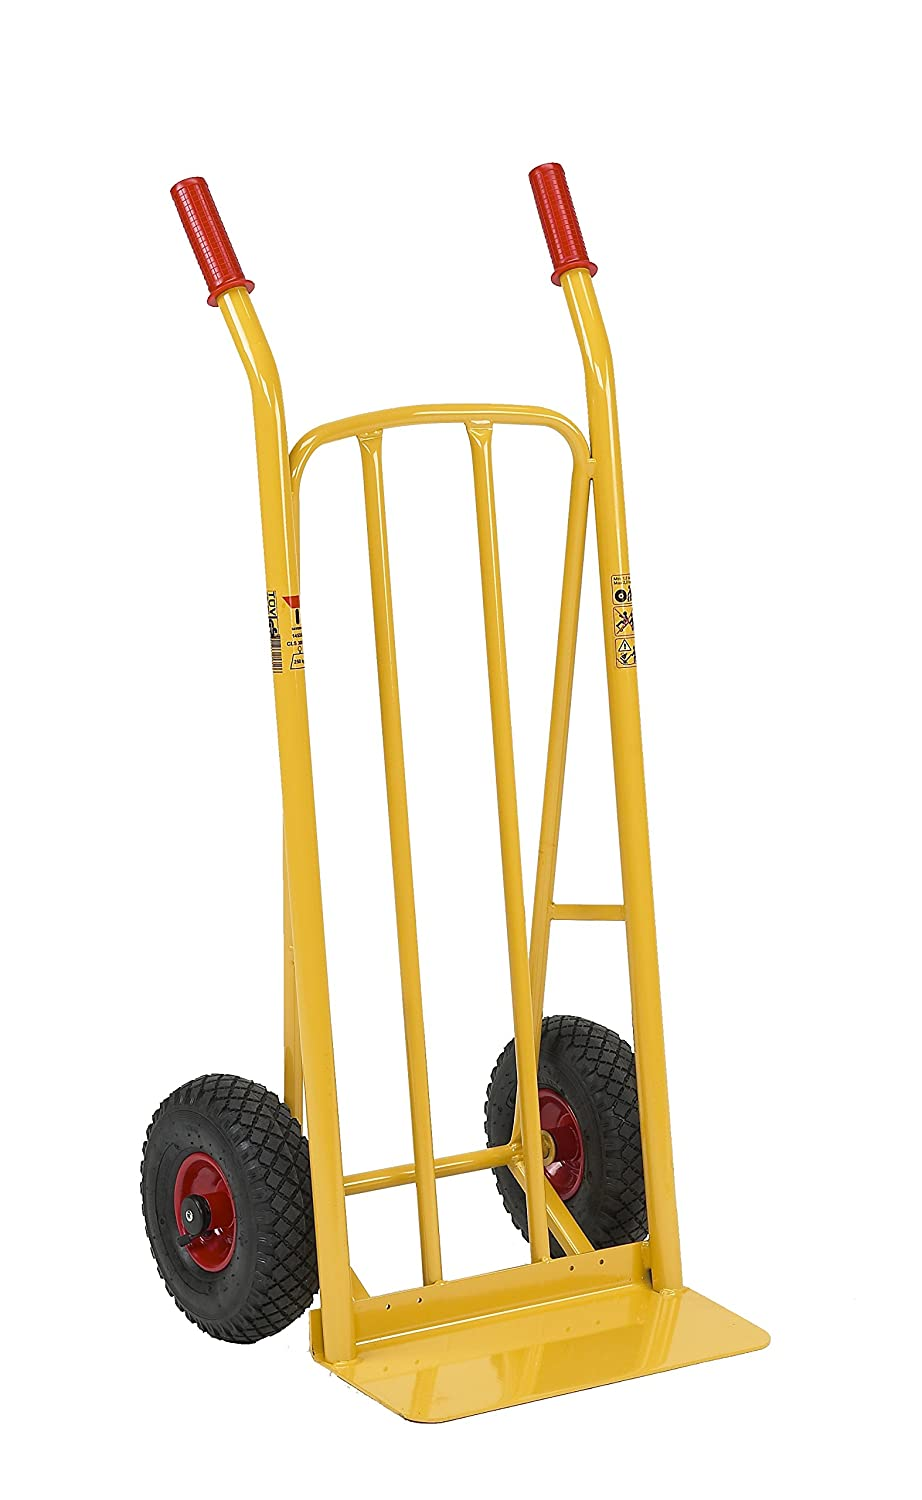 Ravendo HHS143 High Capacity Steel Sack Truck - Yellow